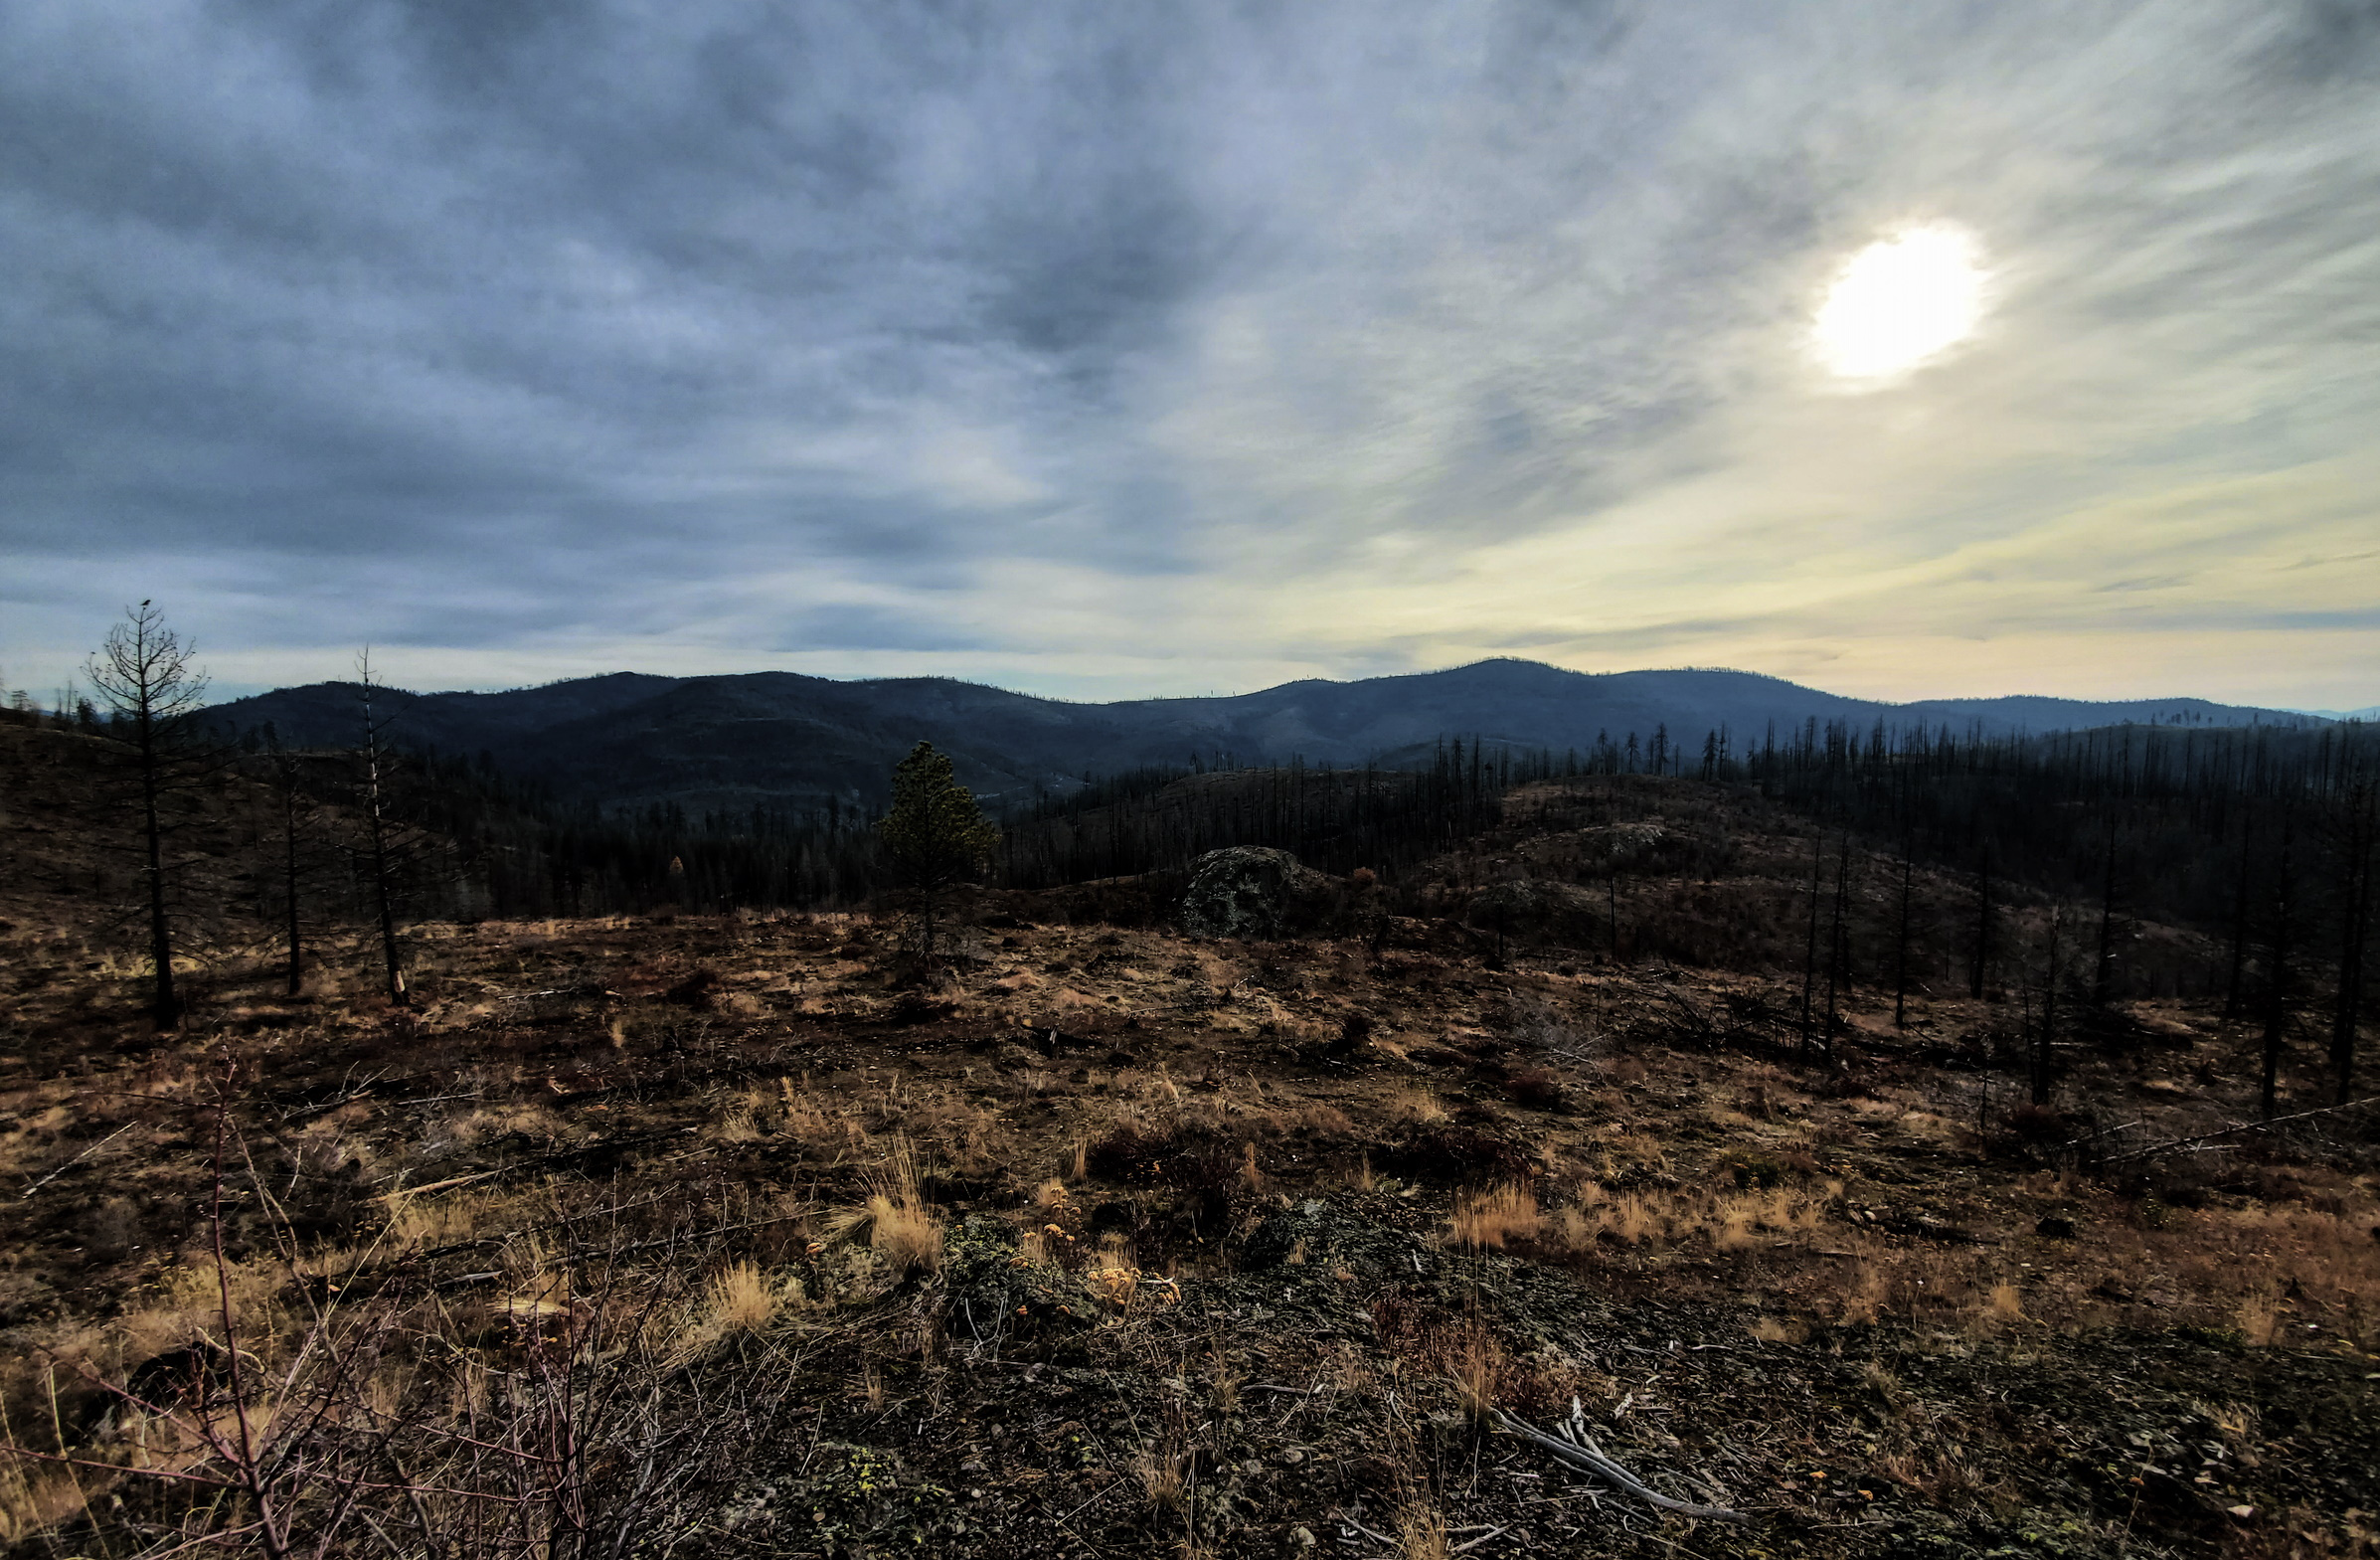 The aftermath of a wildfire, clearing an area of trees.